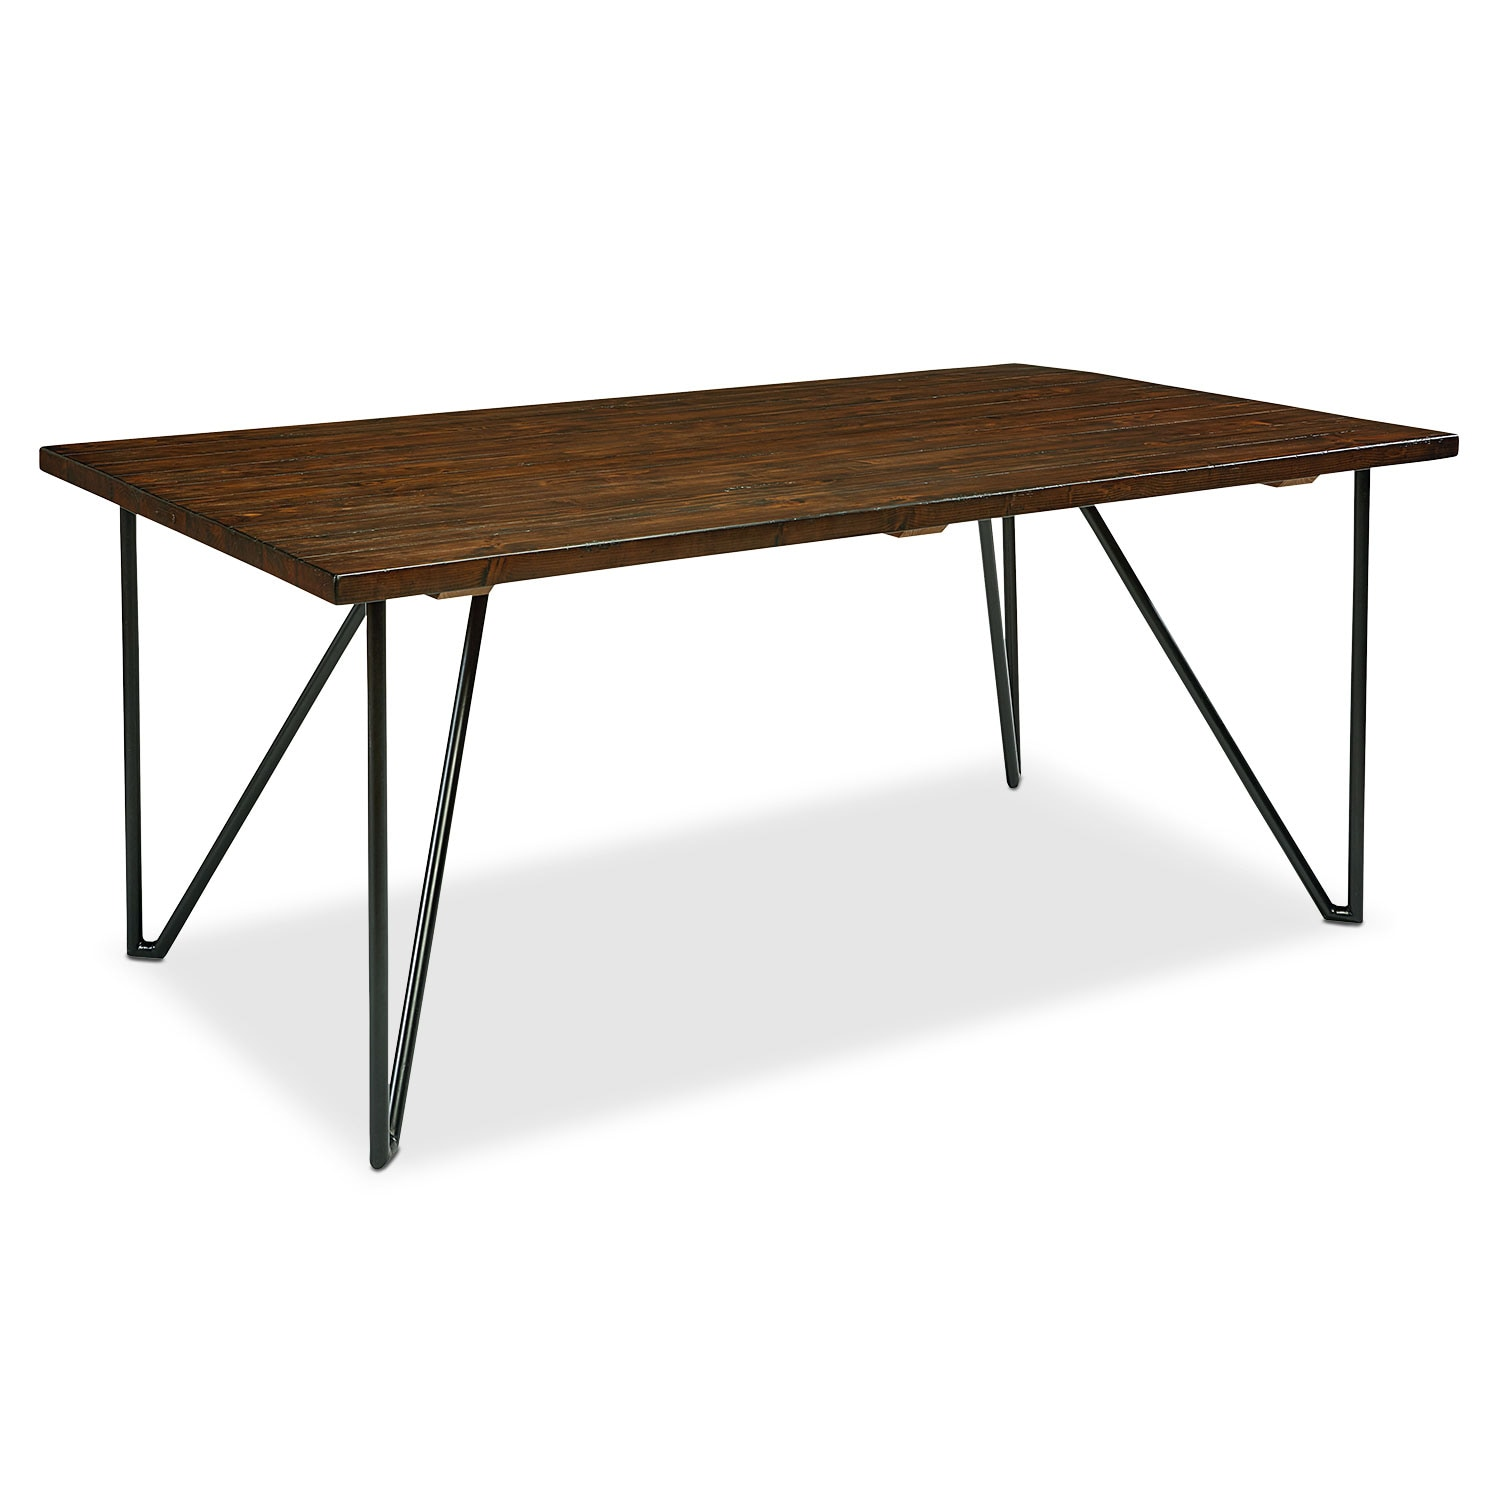 6' Boho Hairpin Dining Table